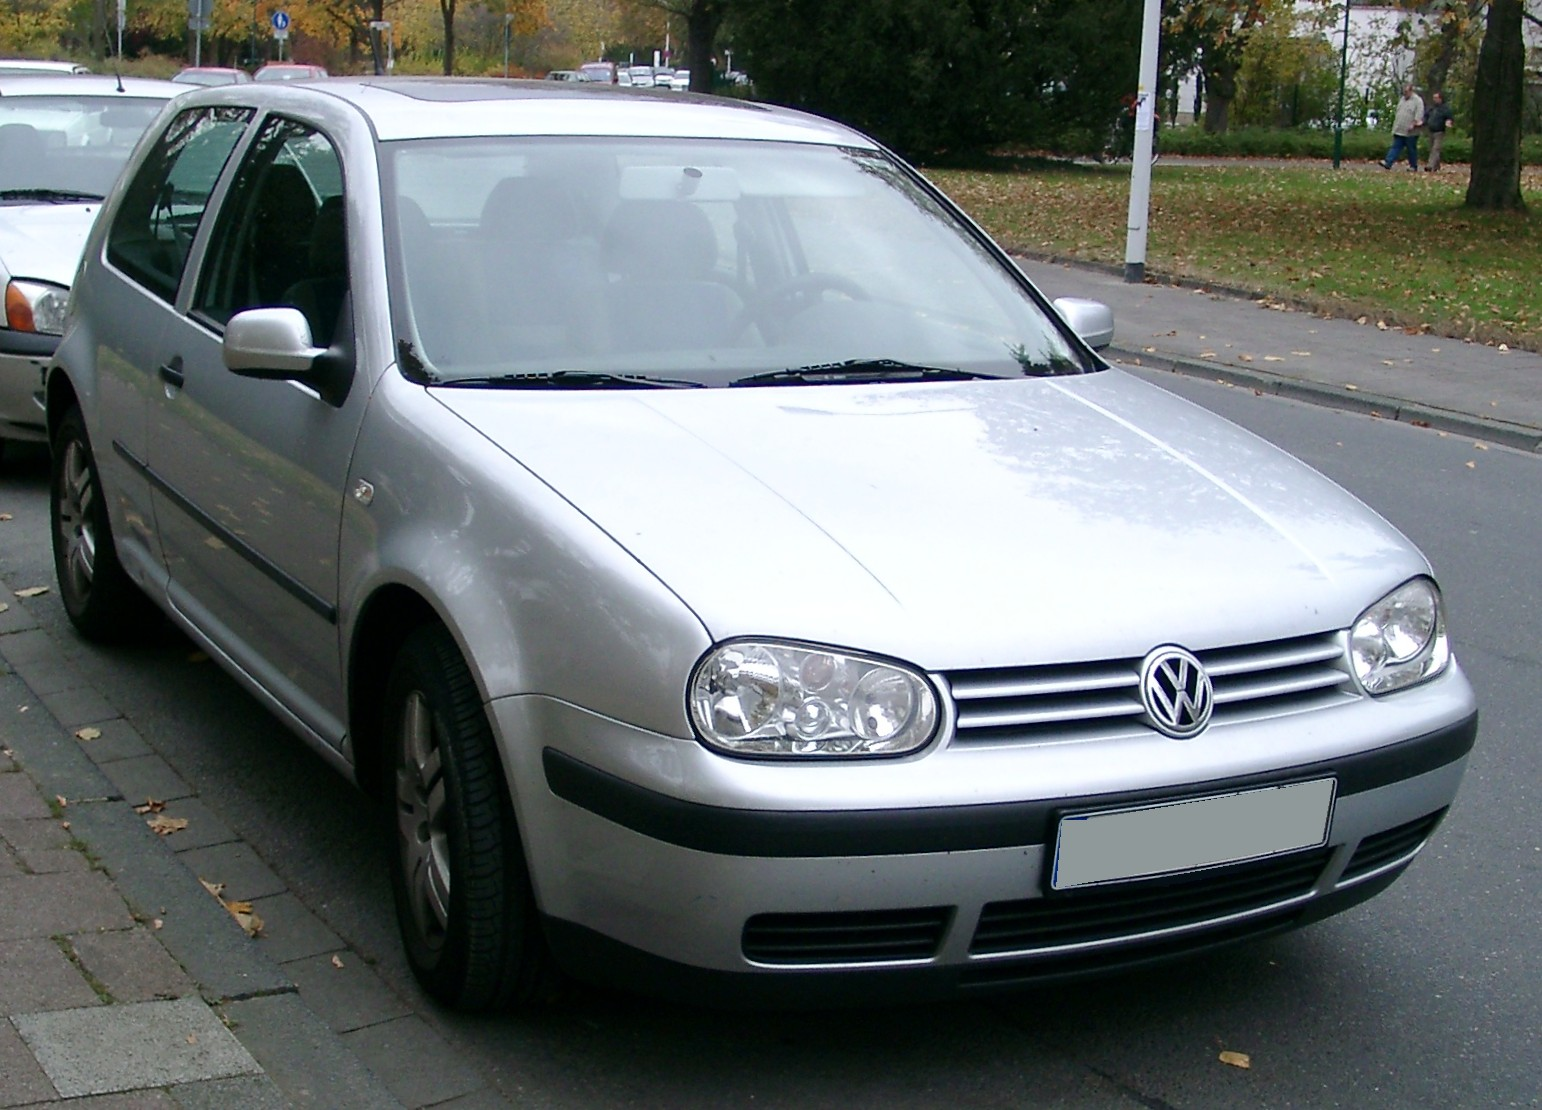 VW Golf 4 photo 02